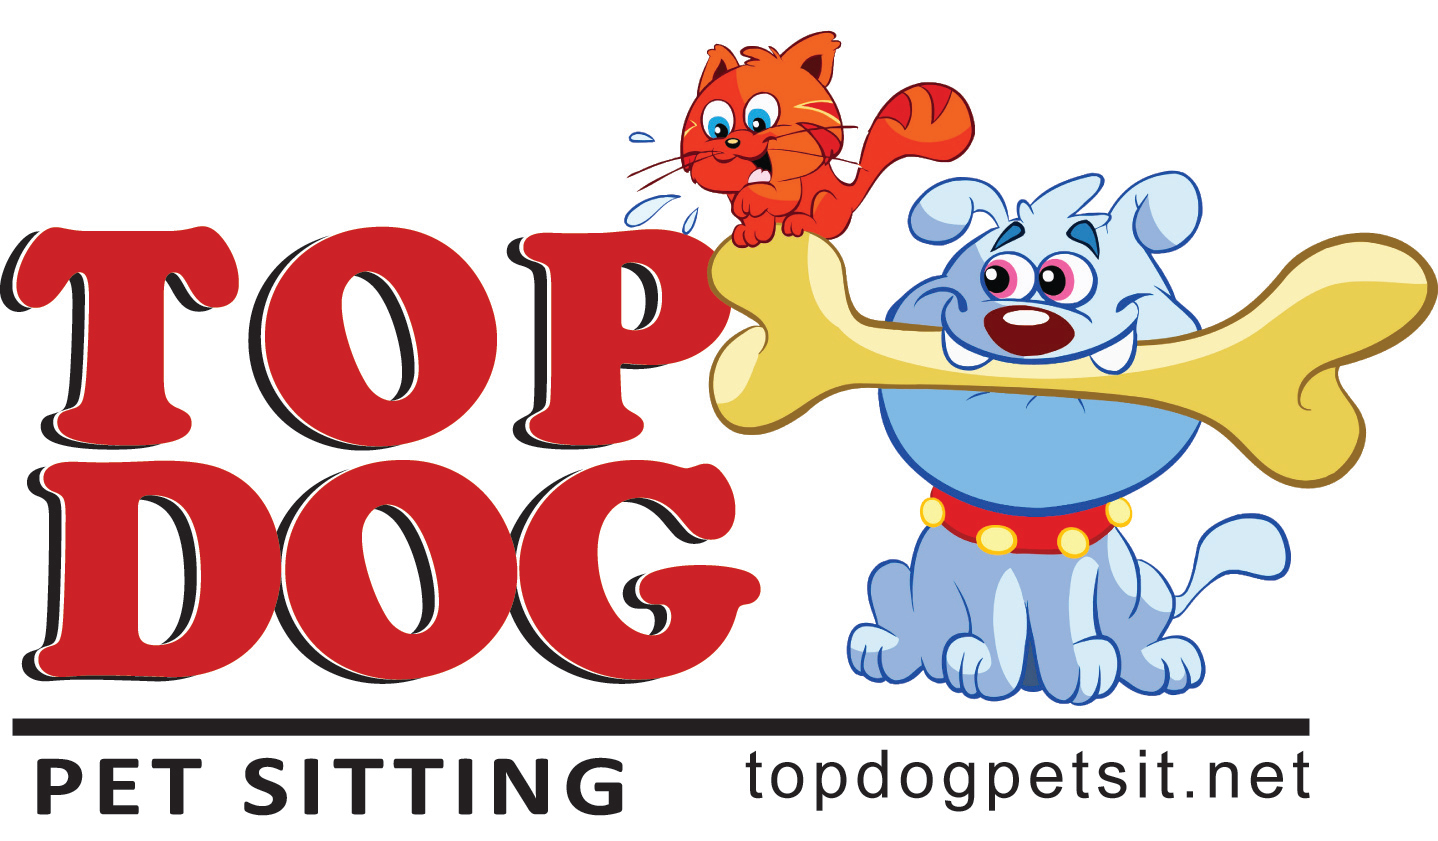 Top Dog Pet Sitting and Dog Walking Services